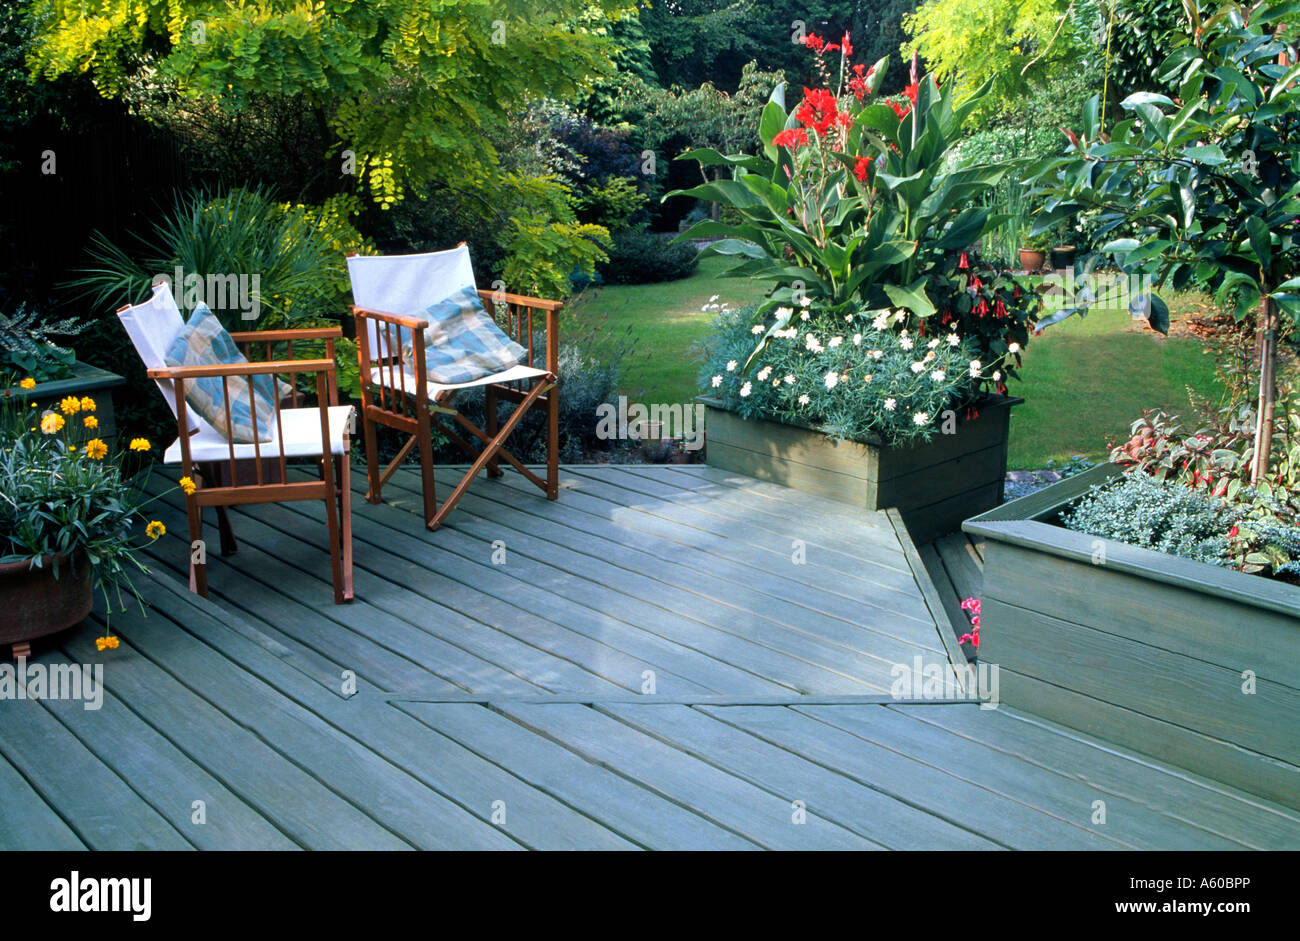 patio garden blue decking chairs cushions garden furniture seating patio terrace relaxing corner